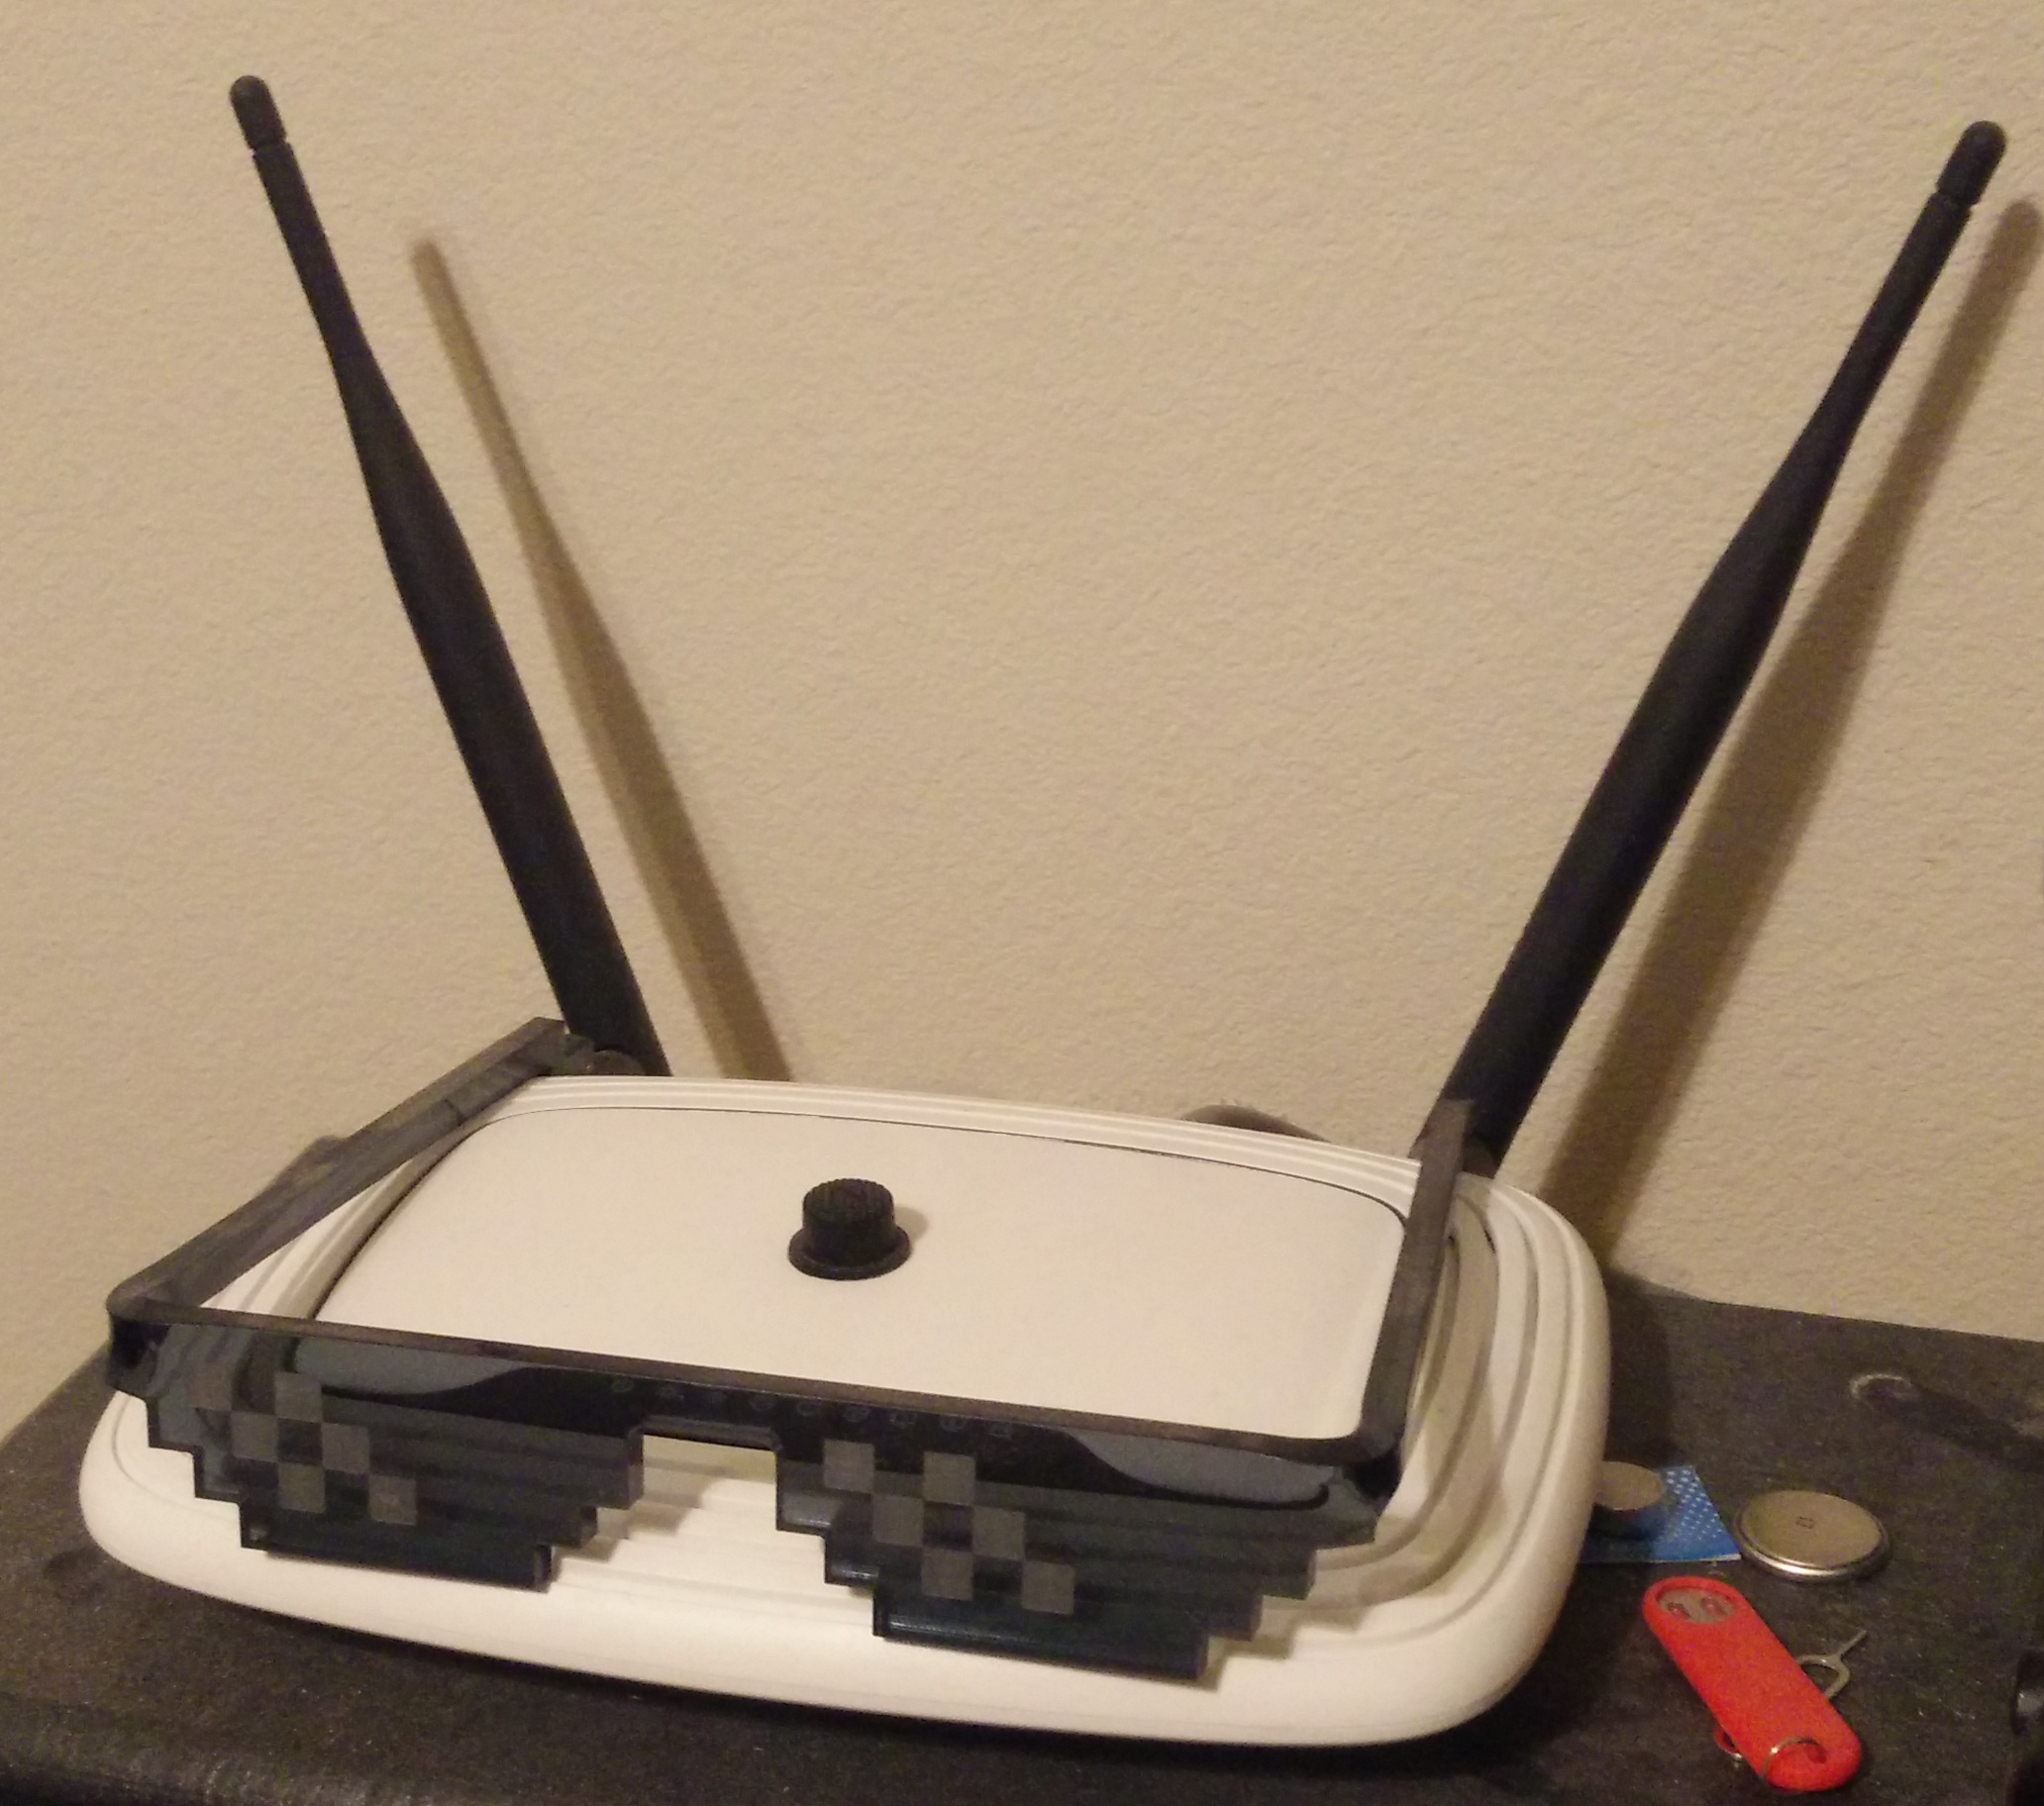 My home router